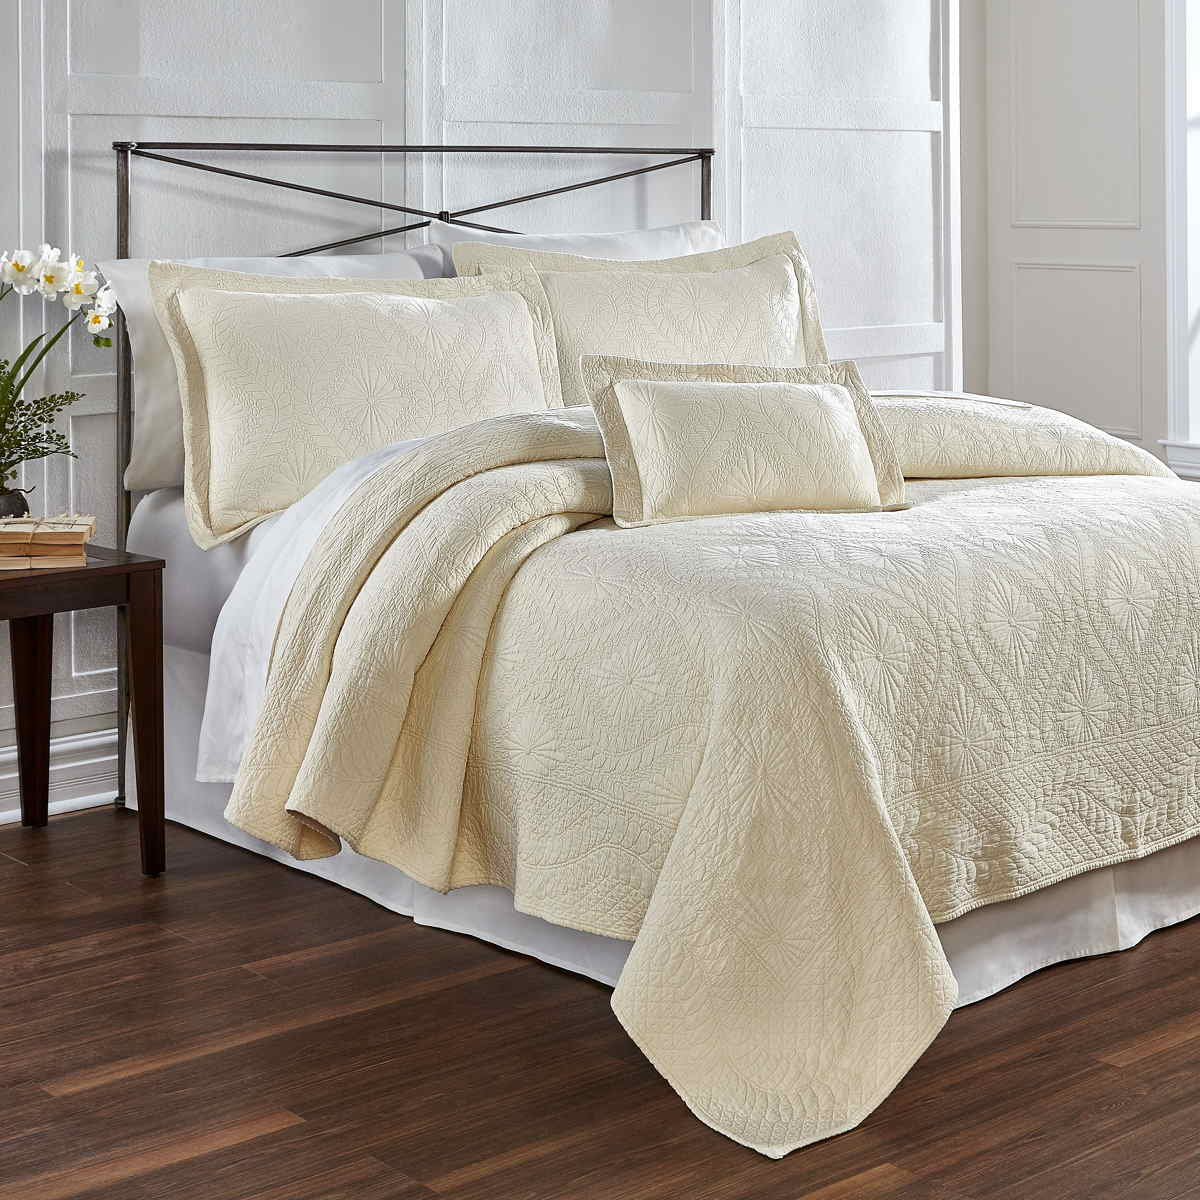 Well-known Traditions Linens Bedding Suzi Matelasse Coverlet and Shams CV86